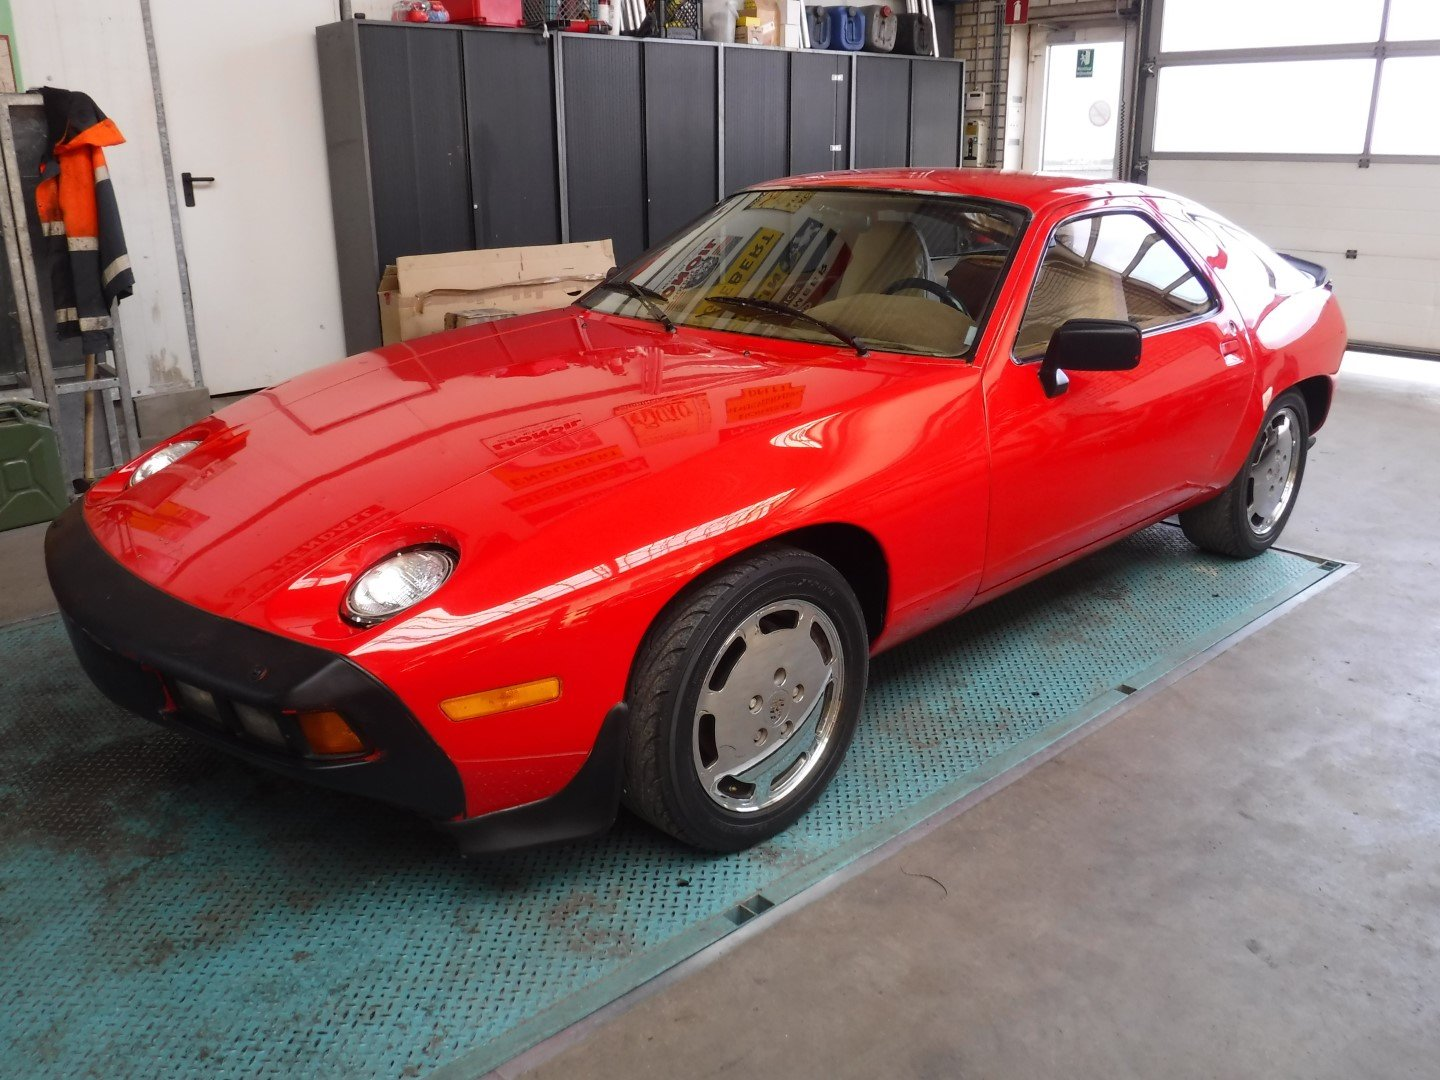 Porsche 928  1979  8 cyl.  4.5L For Sale (picture 1 of 6)